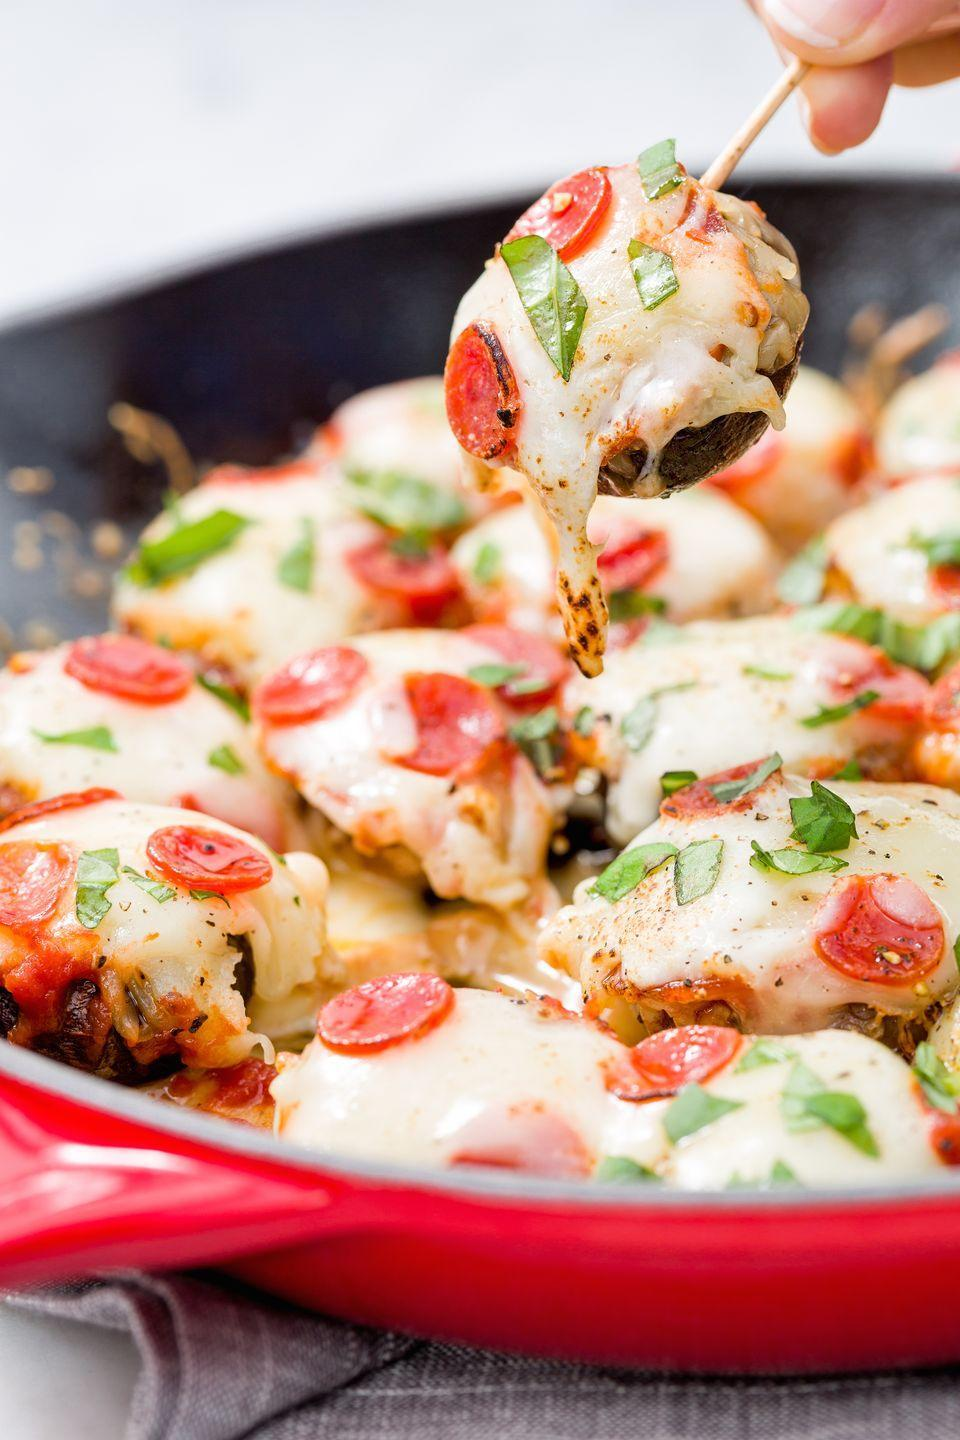 """<p>The appetizer everyone can't stop eating tastes better than ever before.</p><p>Get the recipe from <a href=""""https://www.delish.com/cooking/videos/a44814/pizza-stuffed-mushrooms/"""" rel=""""nofollow noopener"""" target=""""_blank"""" data-ylk=""""slk:Delish"""" class=""""link rapid-noclick-resp"""">Delish</a>.</p>"""